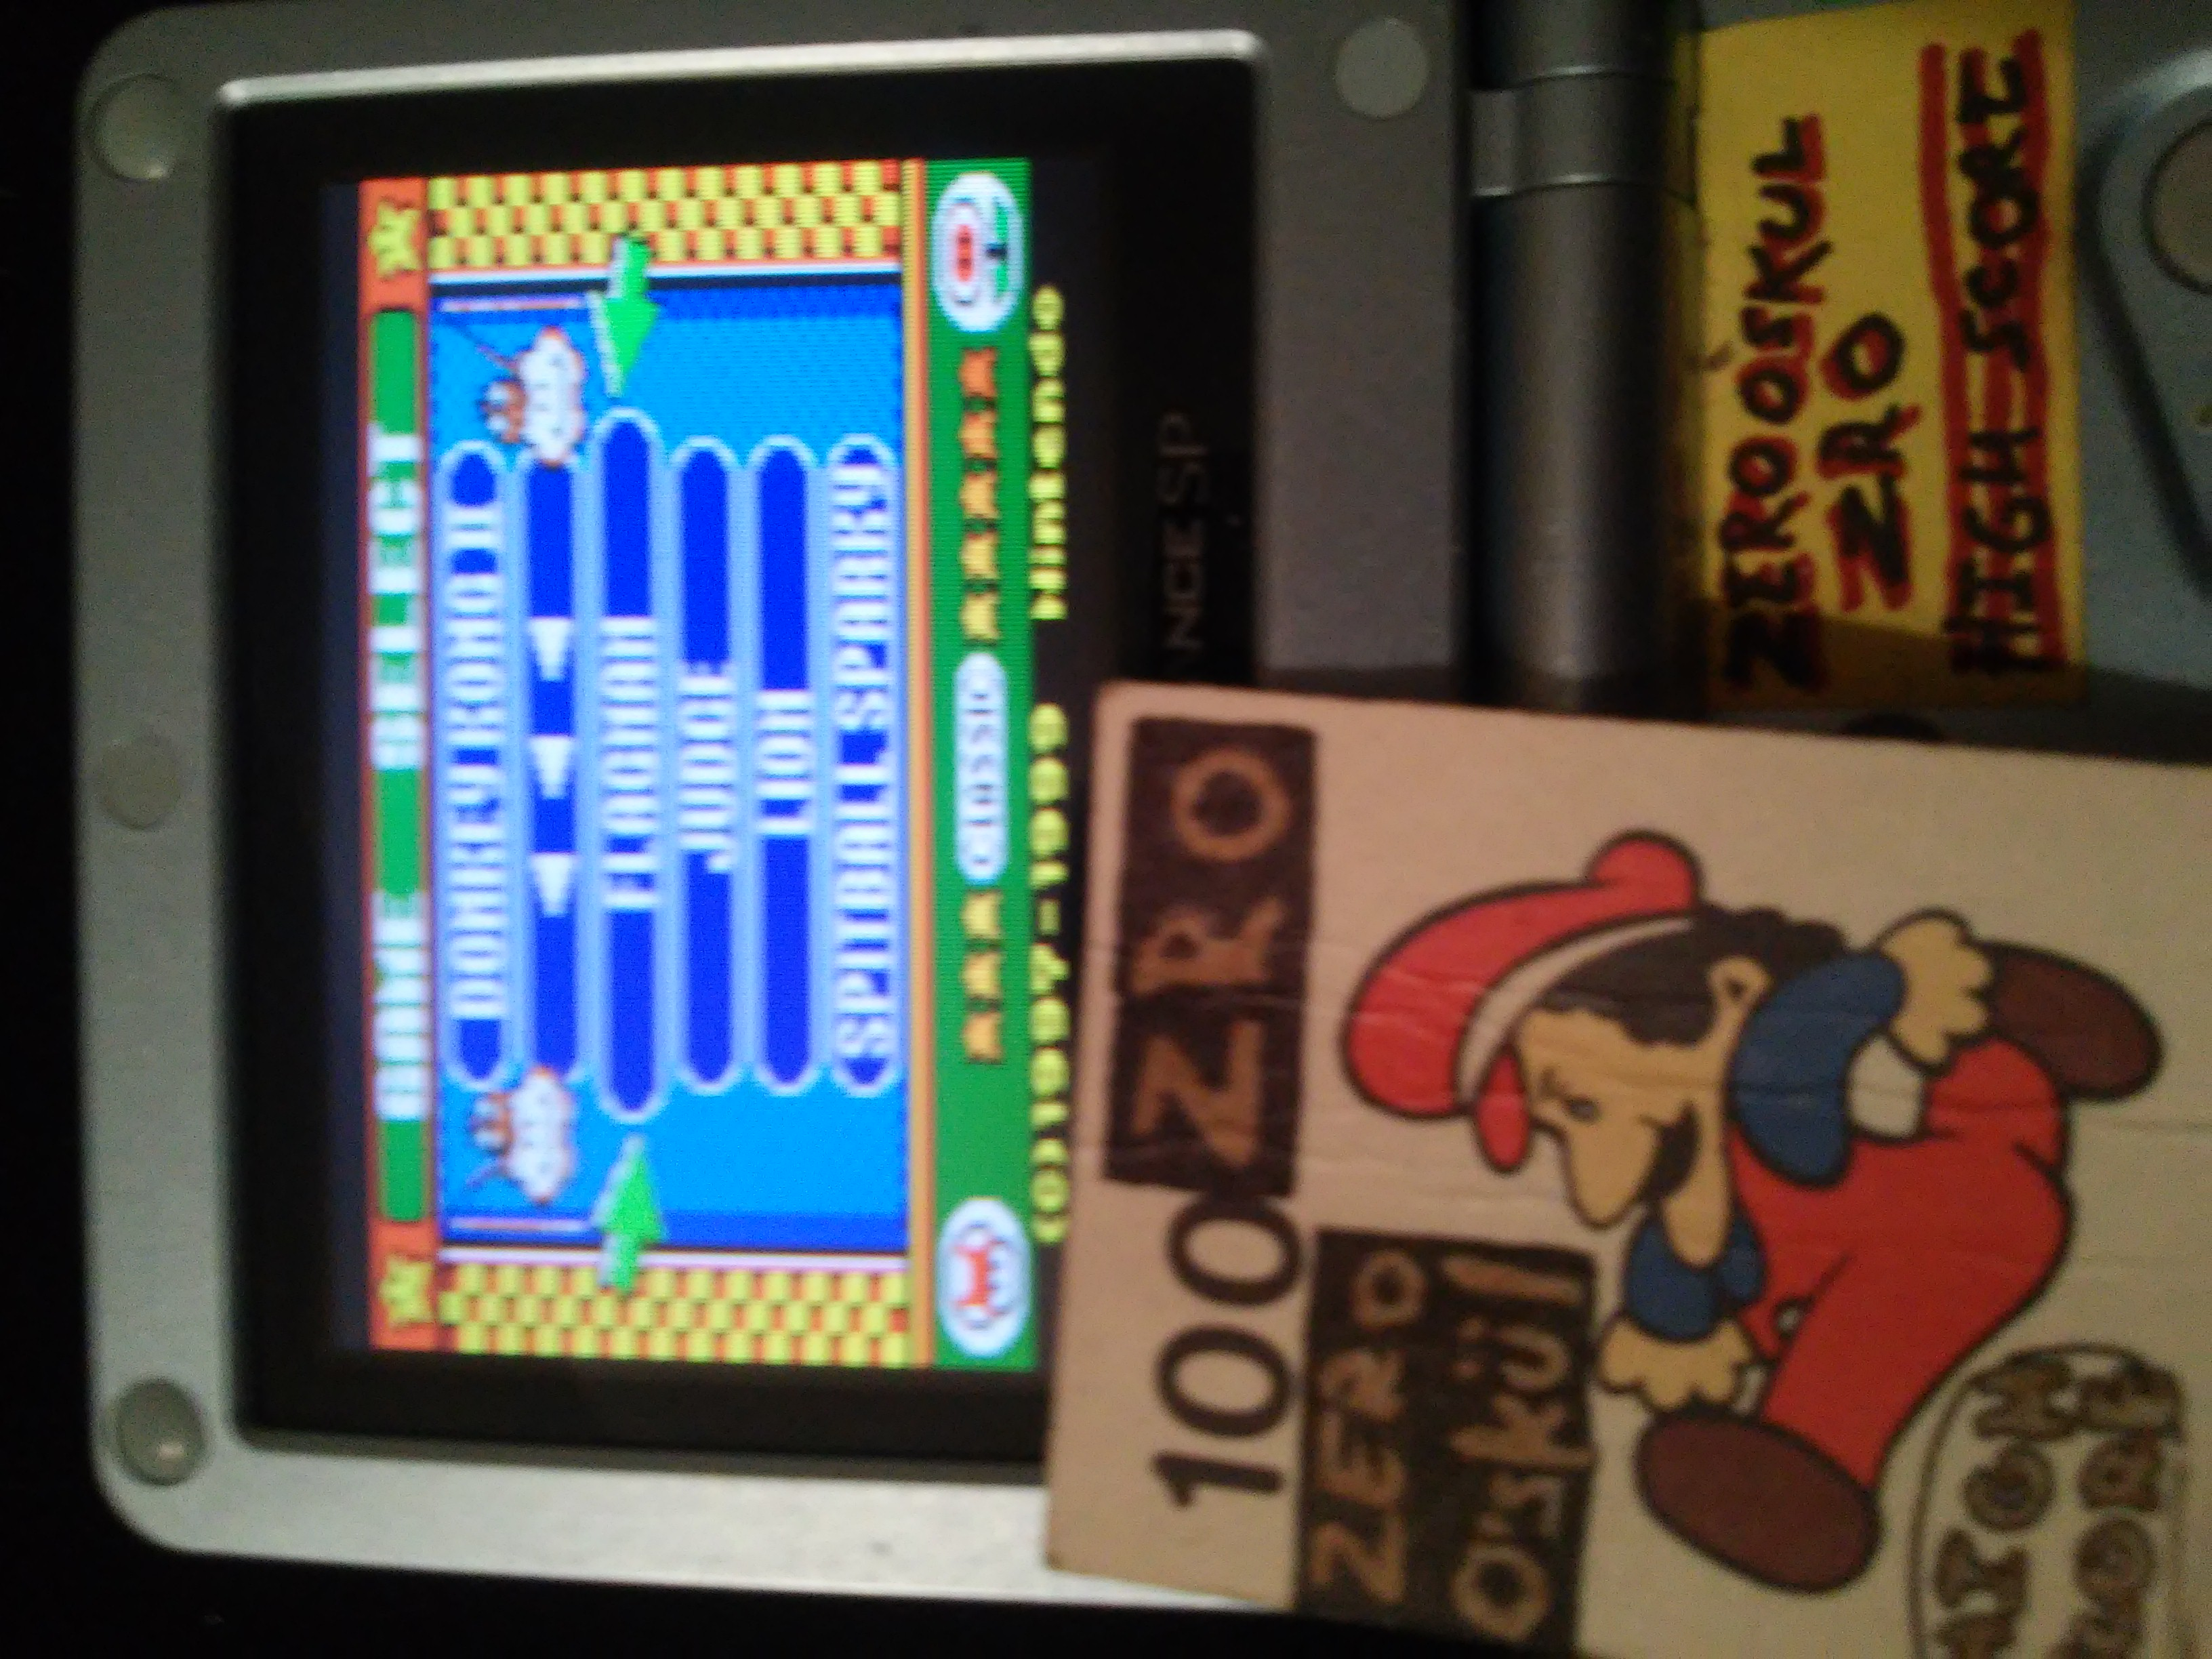 zerooskul: Game & Watch Gallery 3: Flagman [Classic: Game B] (Game Boy Color) 69 points on 2019-02-03 17:04:47